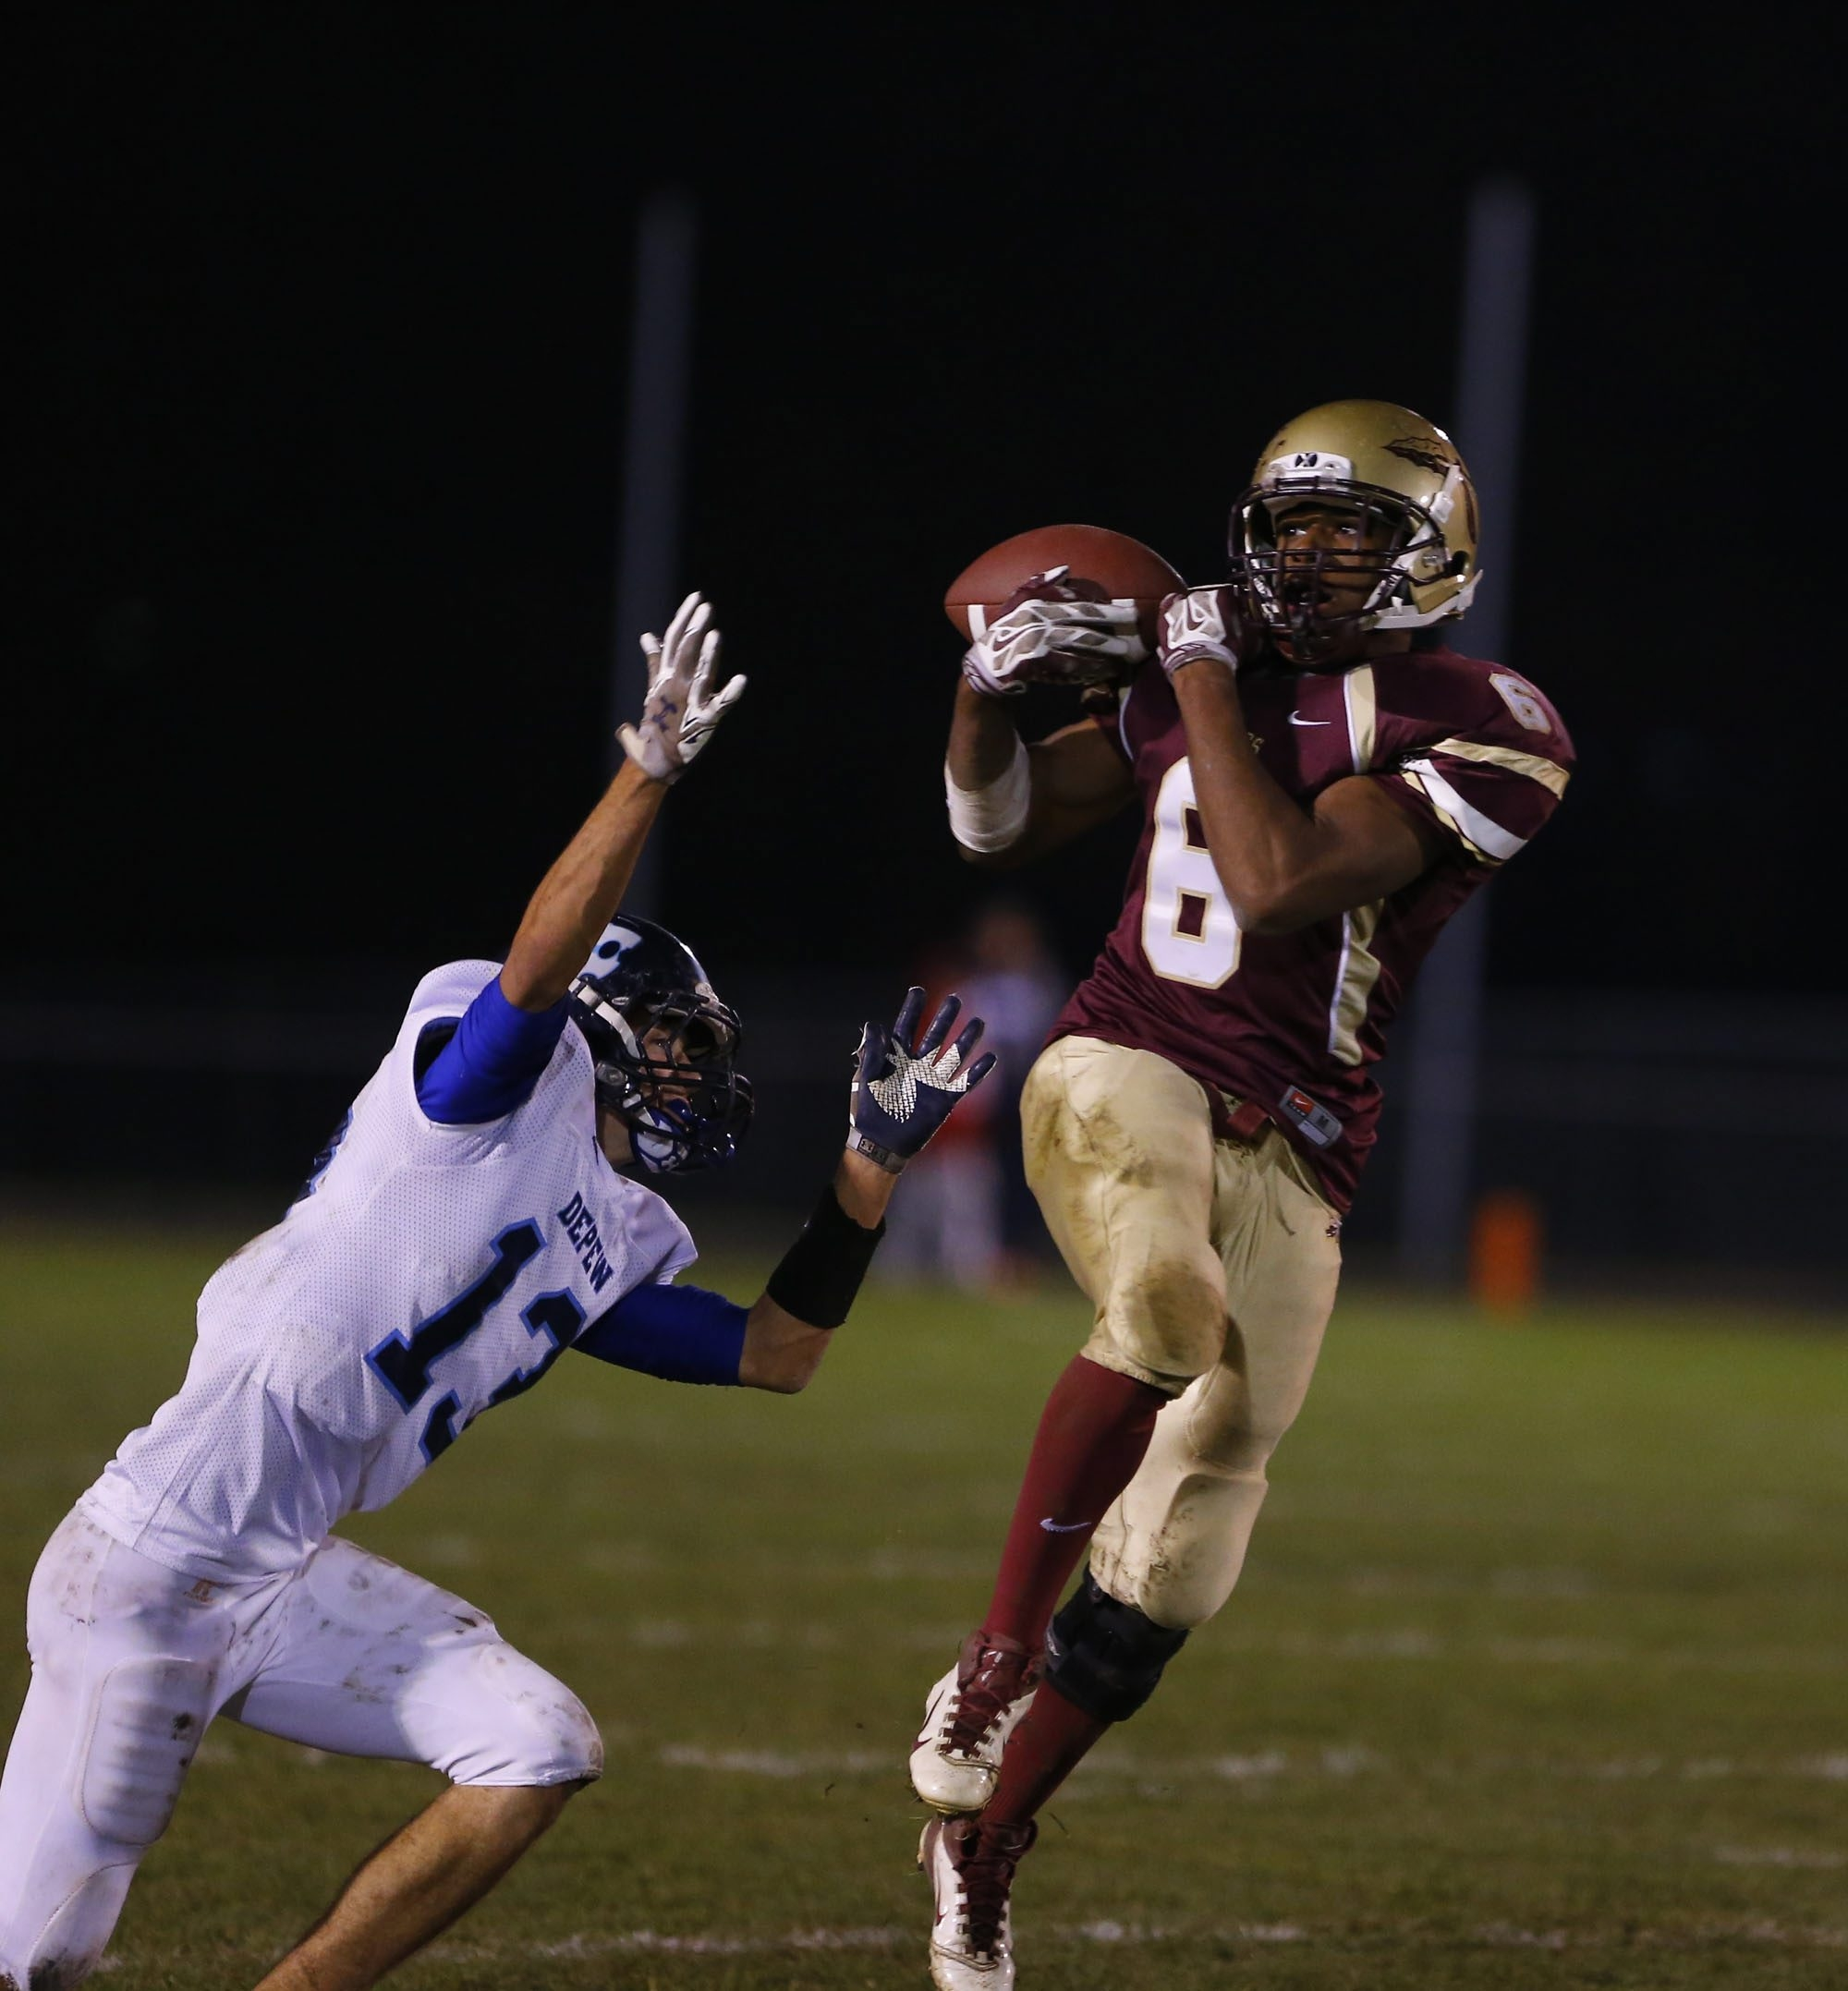 Cheektowaga's Naeem Shah picks off a pass intended for Depew's Tyler Anna in the second half.